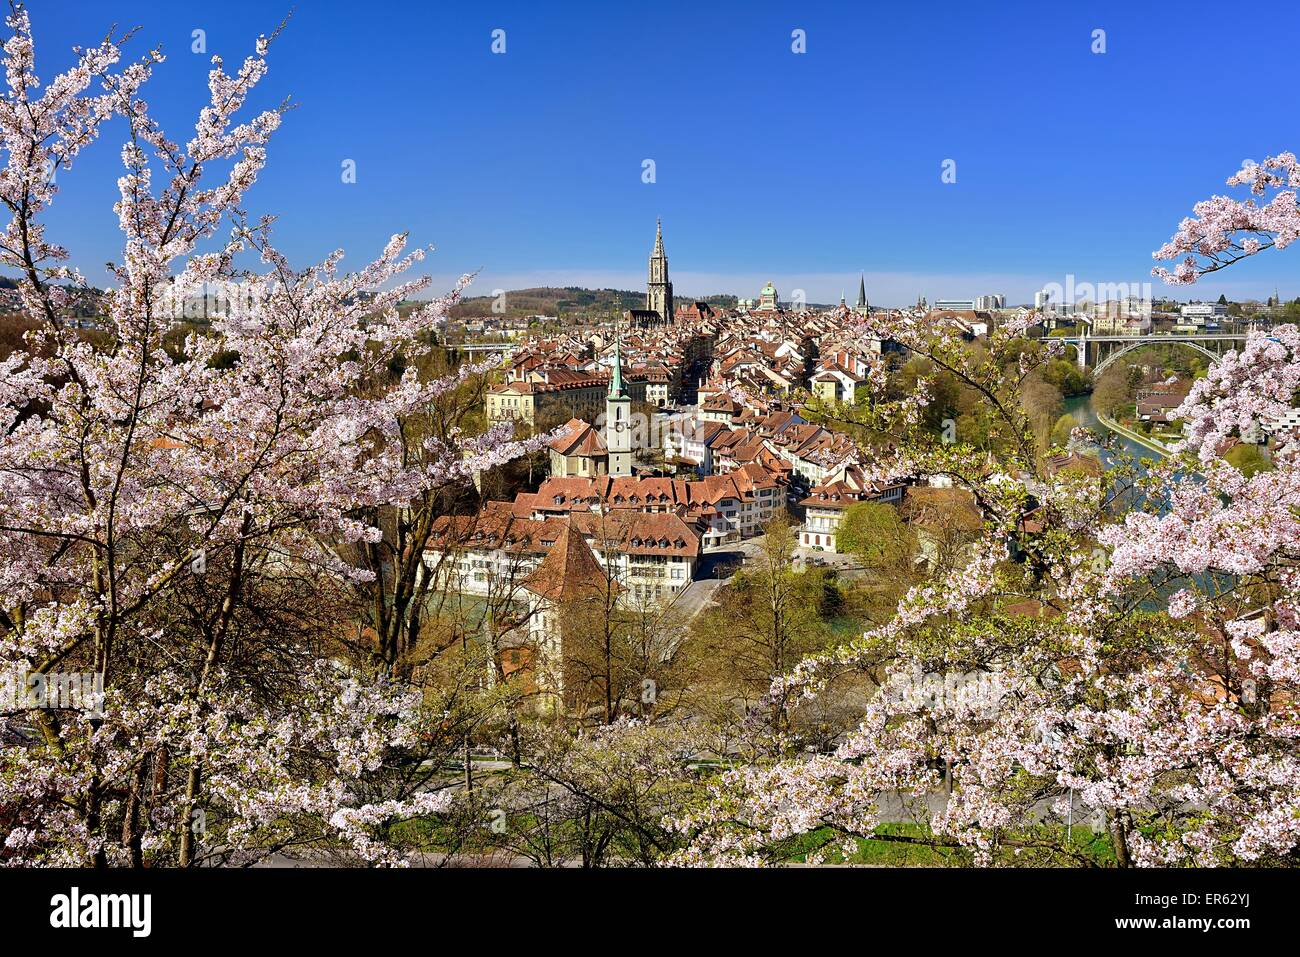 City View Of Bern Stock Photos & City View Of Bern Stock Images - Alamy